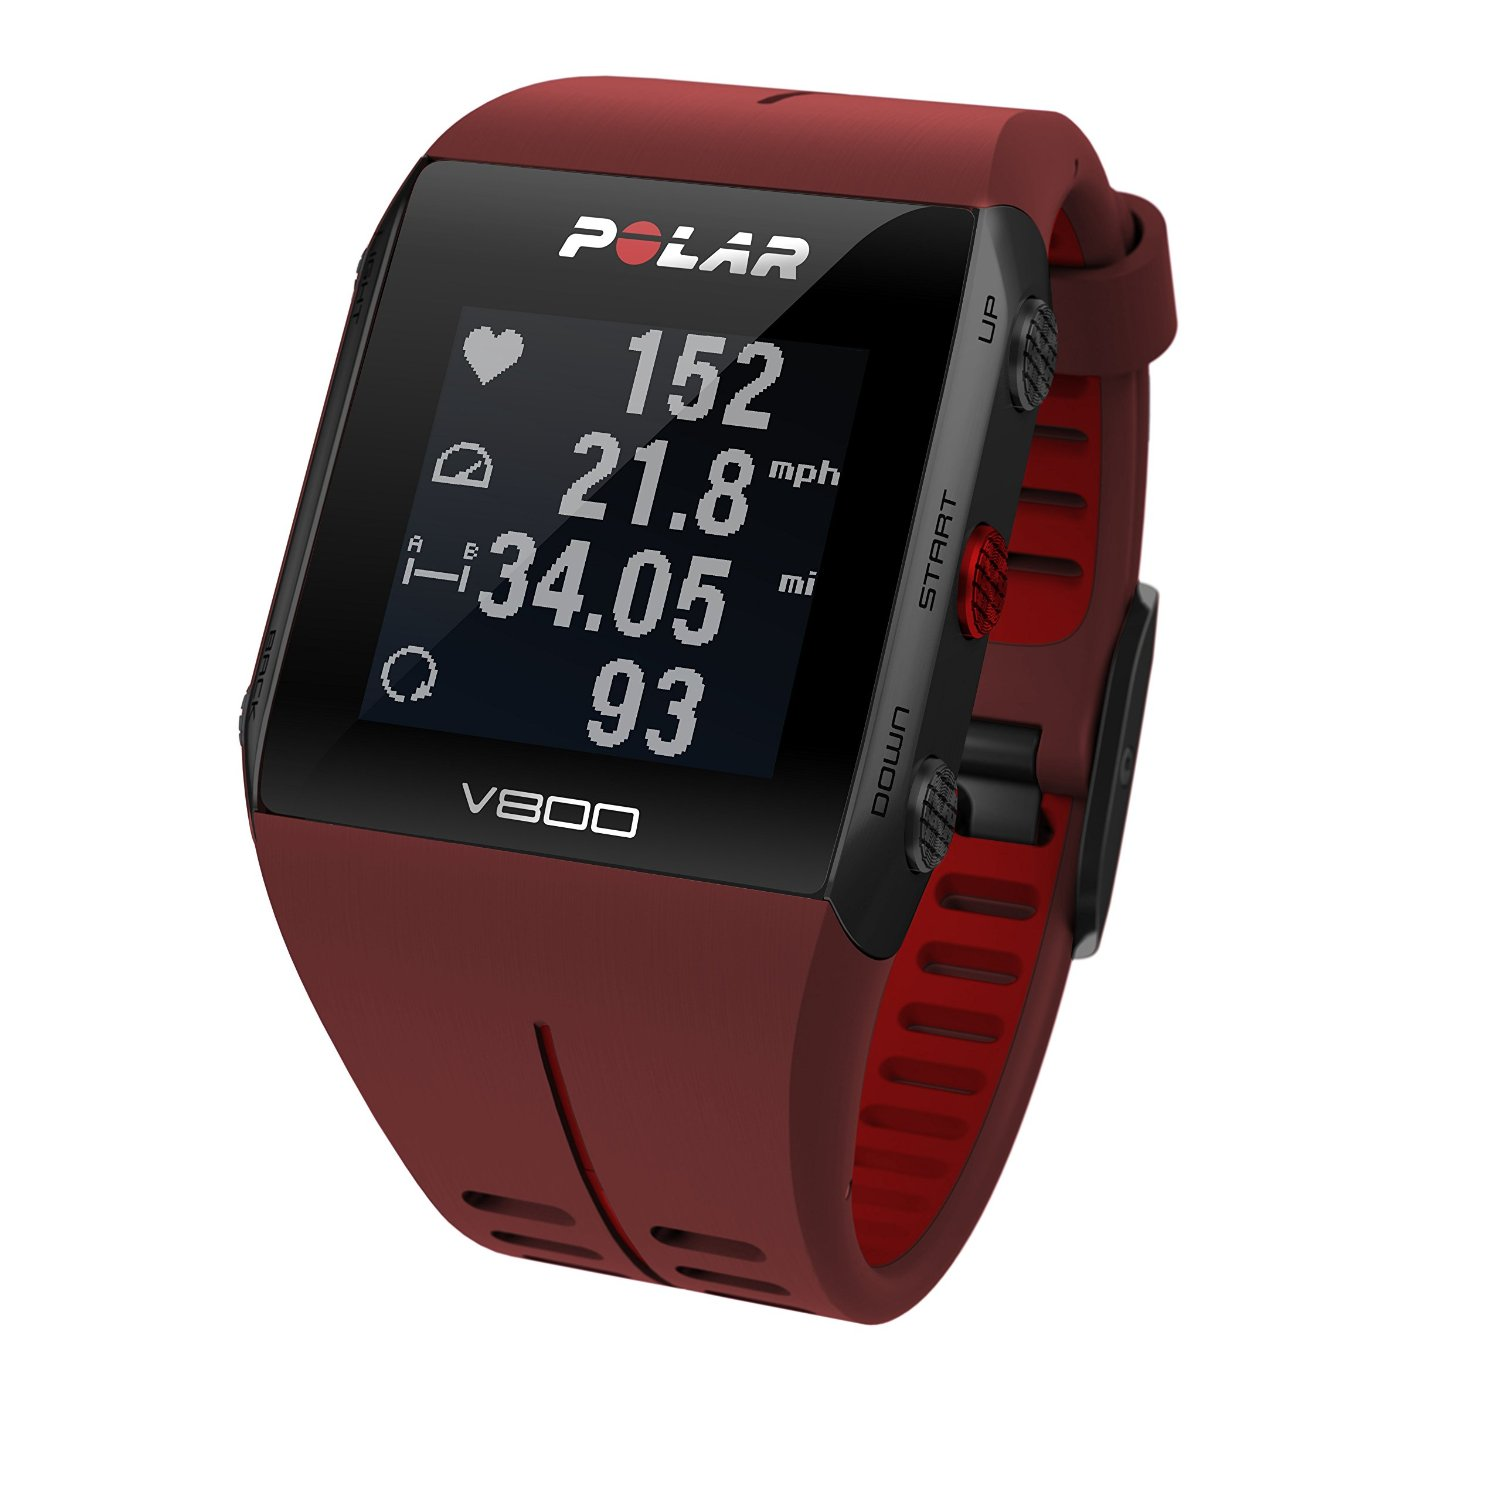 Polar V800 Waterproof Sports Watch with GPS Functionality